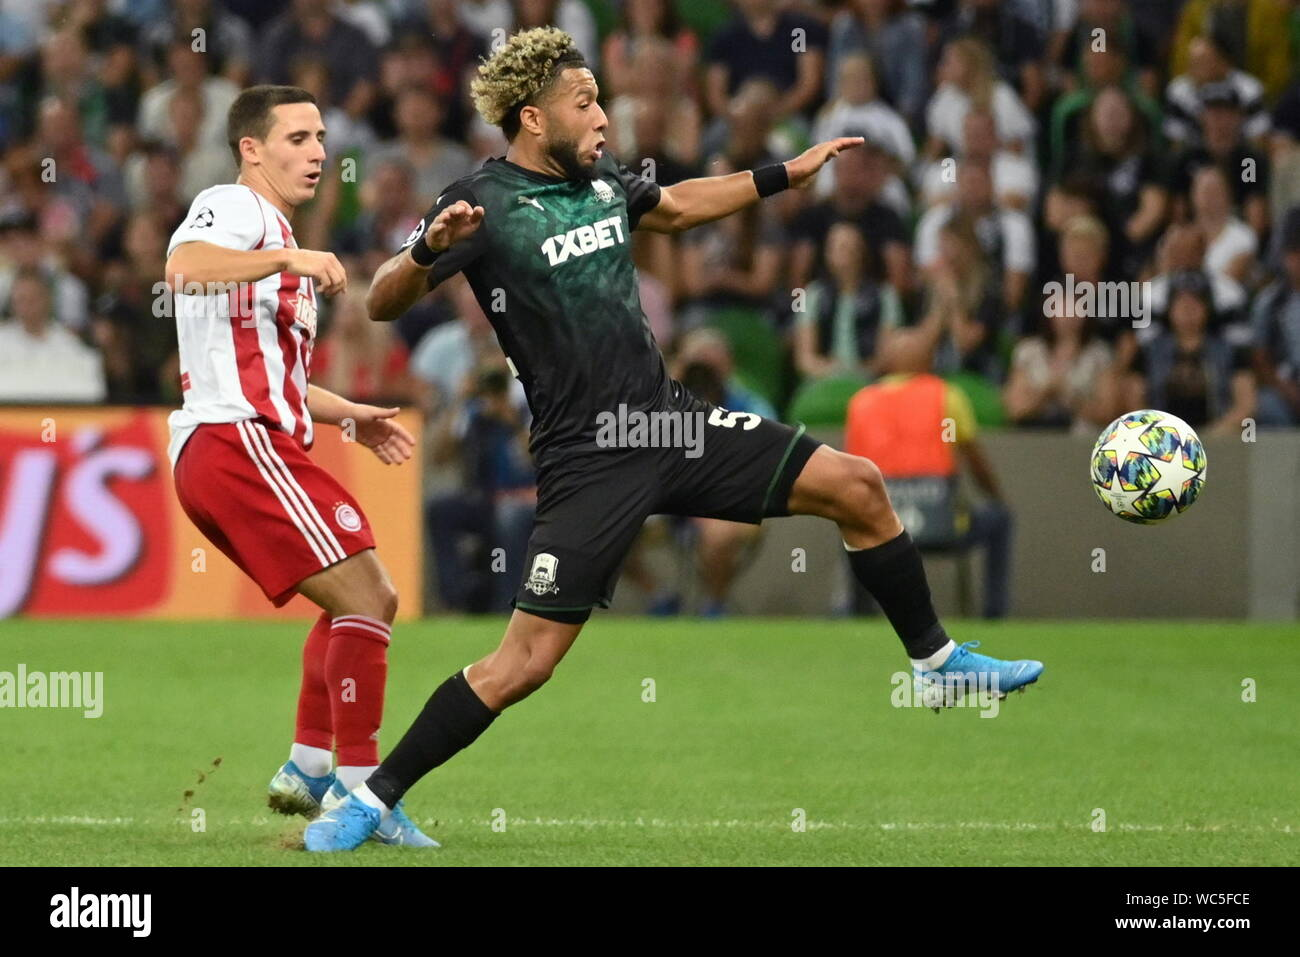 Krasnodar Russia 27th Aug 2019 Krasnodar Russia August 27 2019 Olympiacos Fc S Daniel Podence L And